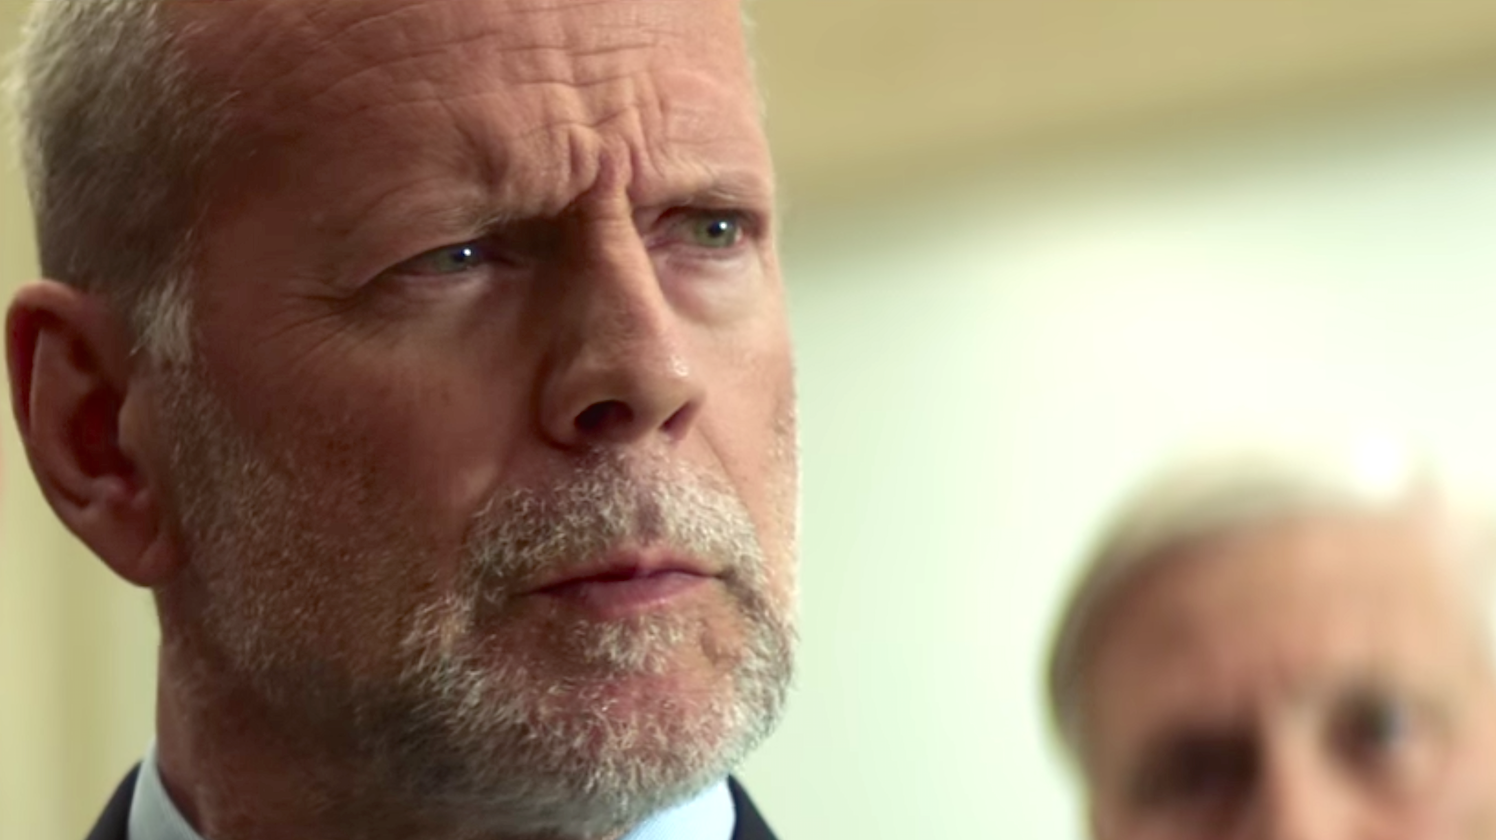 Maruaders (2016), Bruce Willis